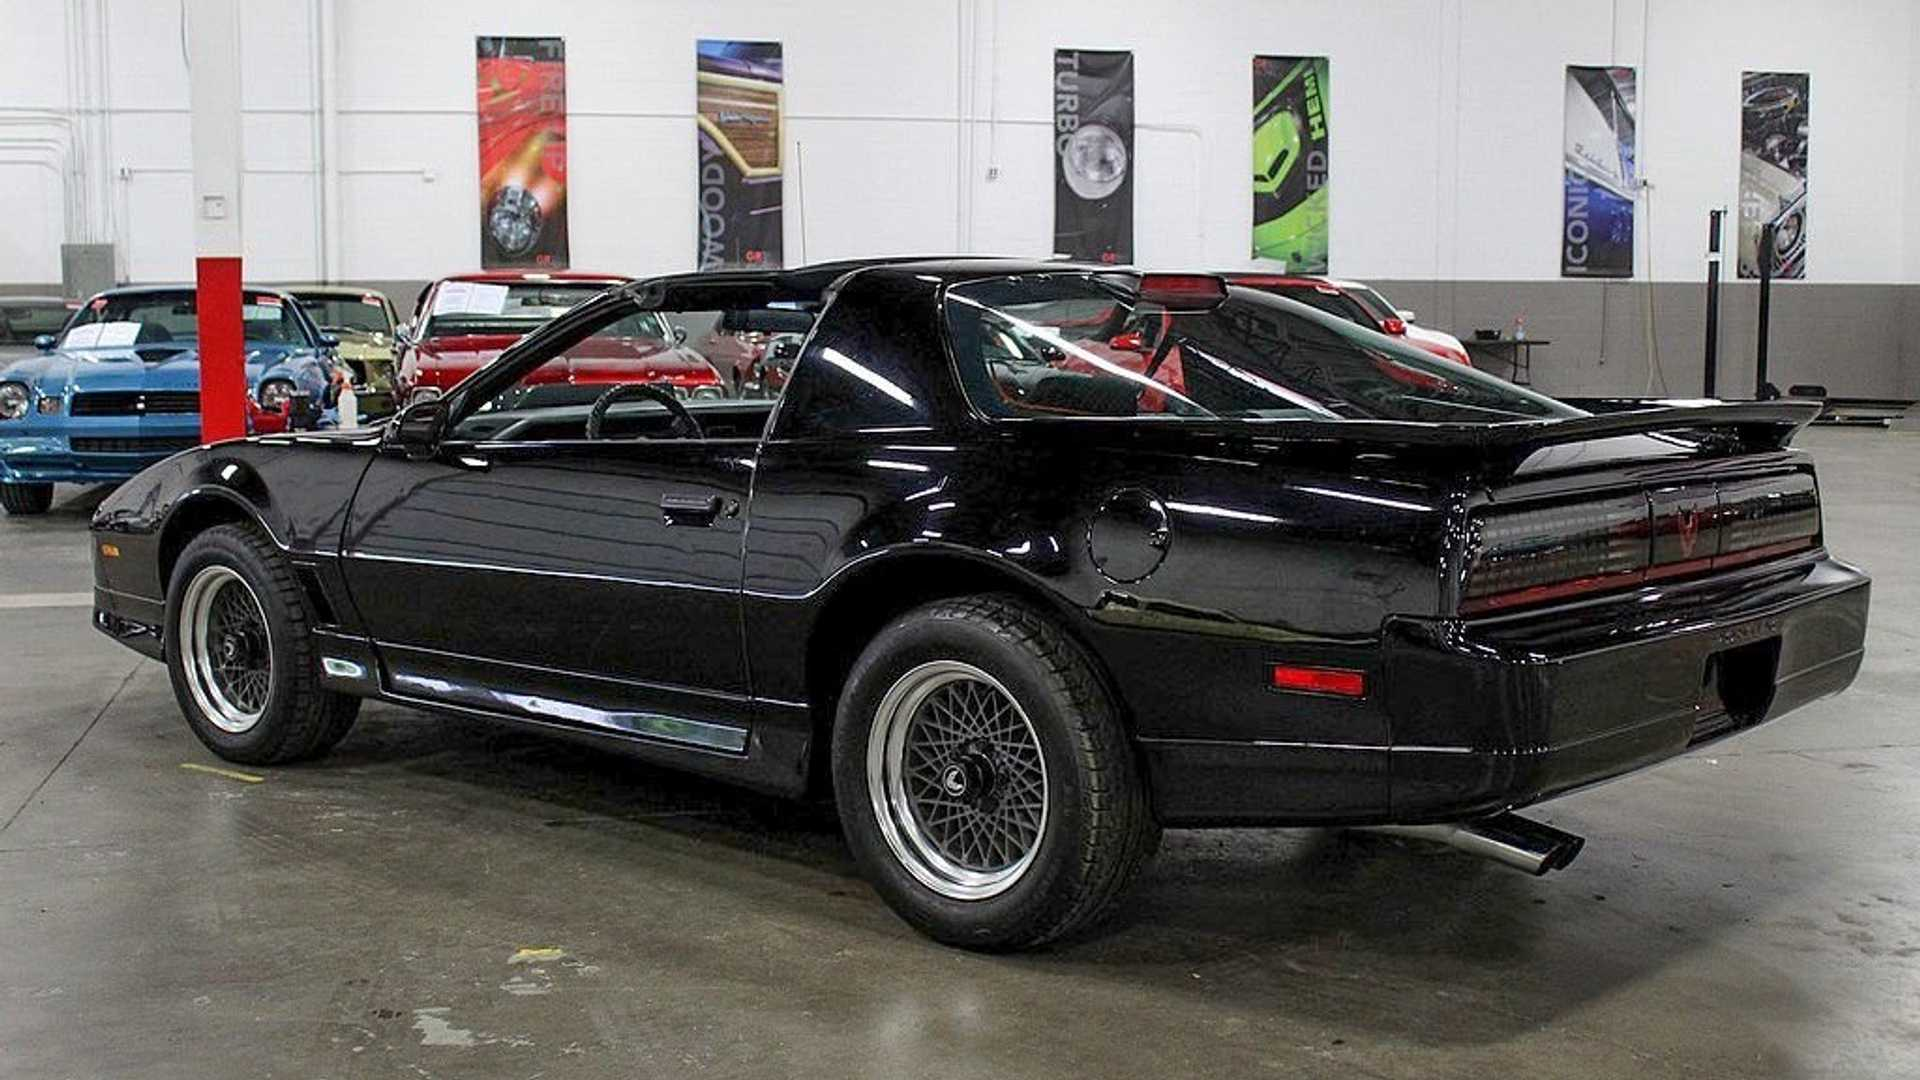 they call this 1986 pontiac trans am the night rider motorious 1986 pontiac trans am the night rider